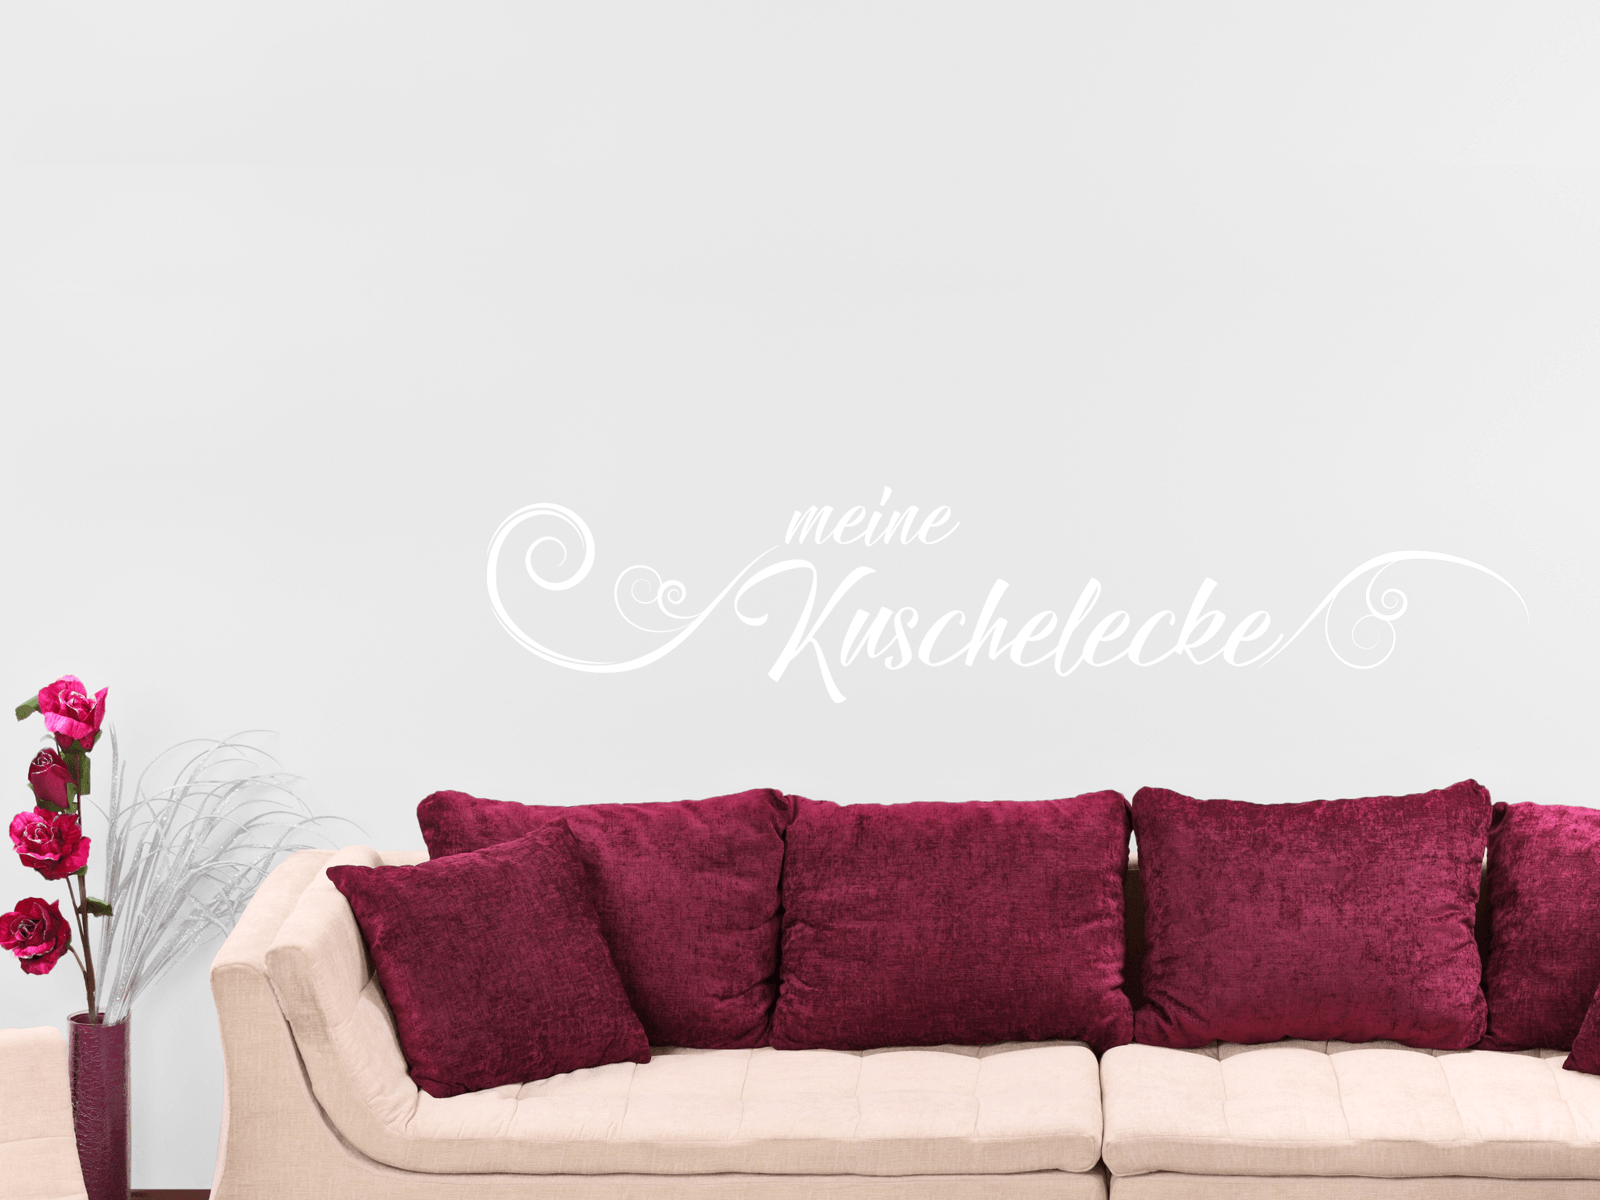 wandtattoo meine kuschelecke schriftzug wohnzimmer schlafzimmer tocut werbetechnik. Black Bedroom Furniture Sets. Home Design Ideas